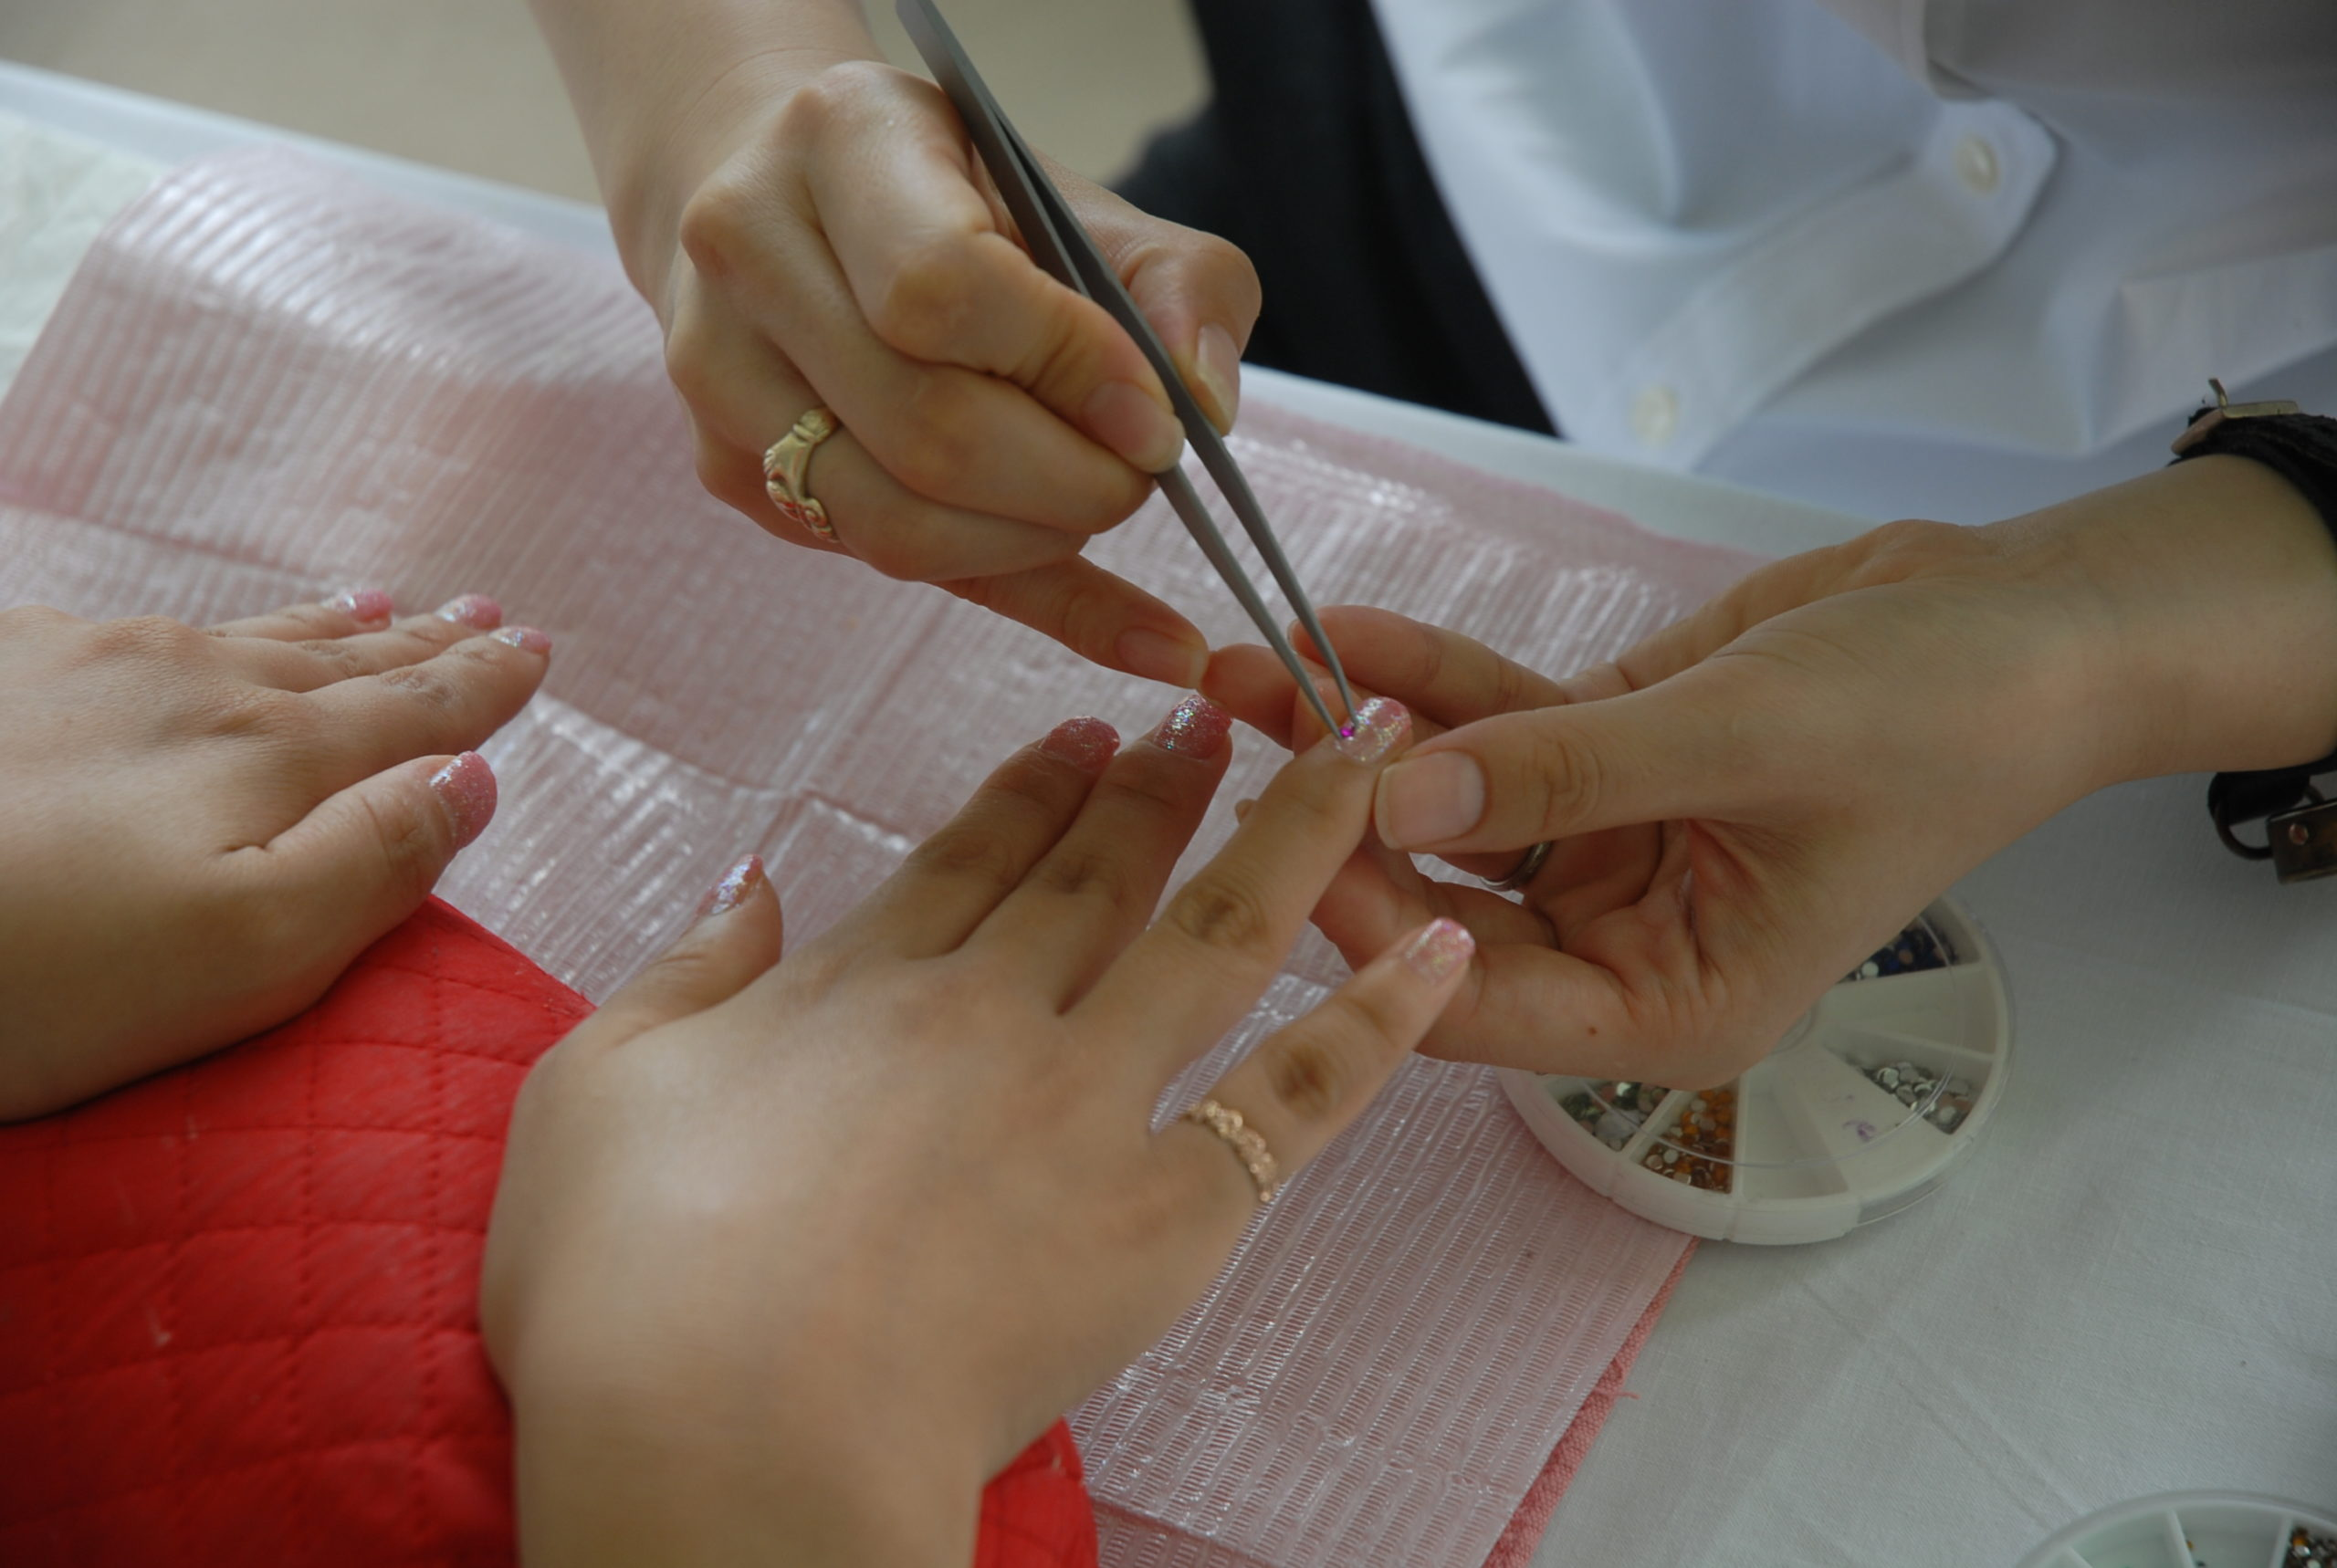 What Are Pedicure And Manicure?